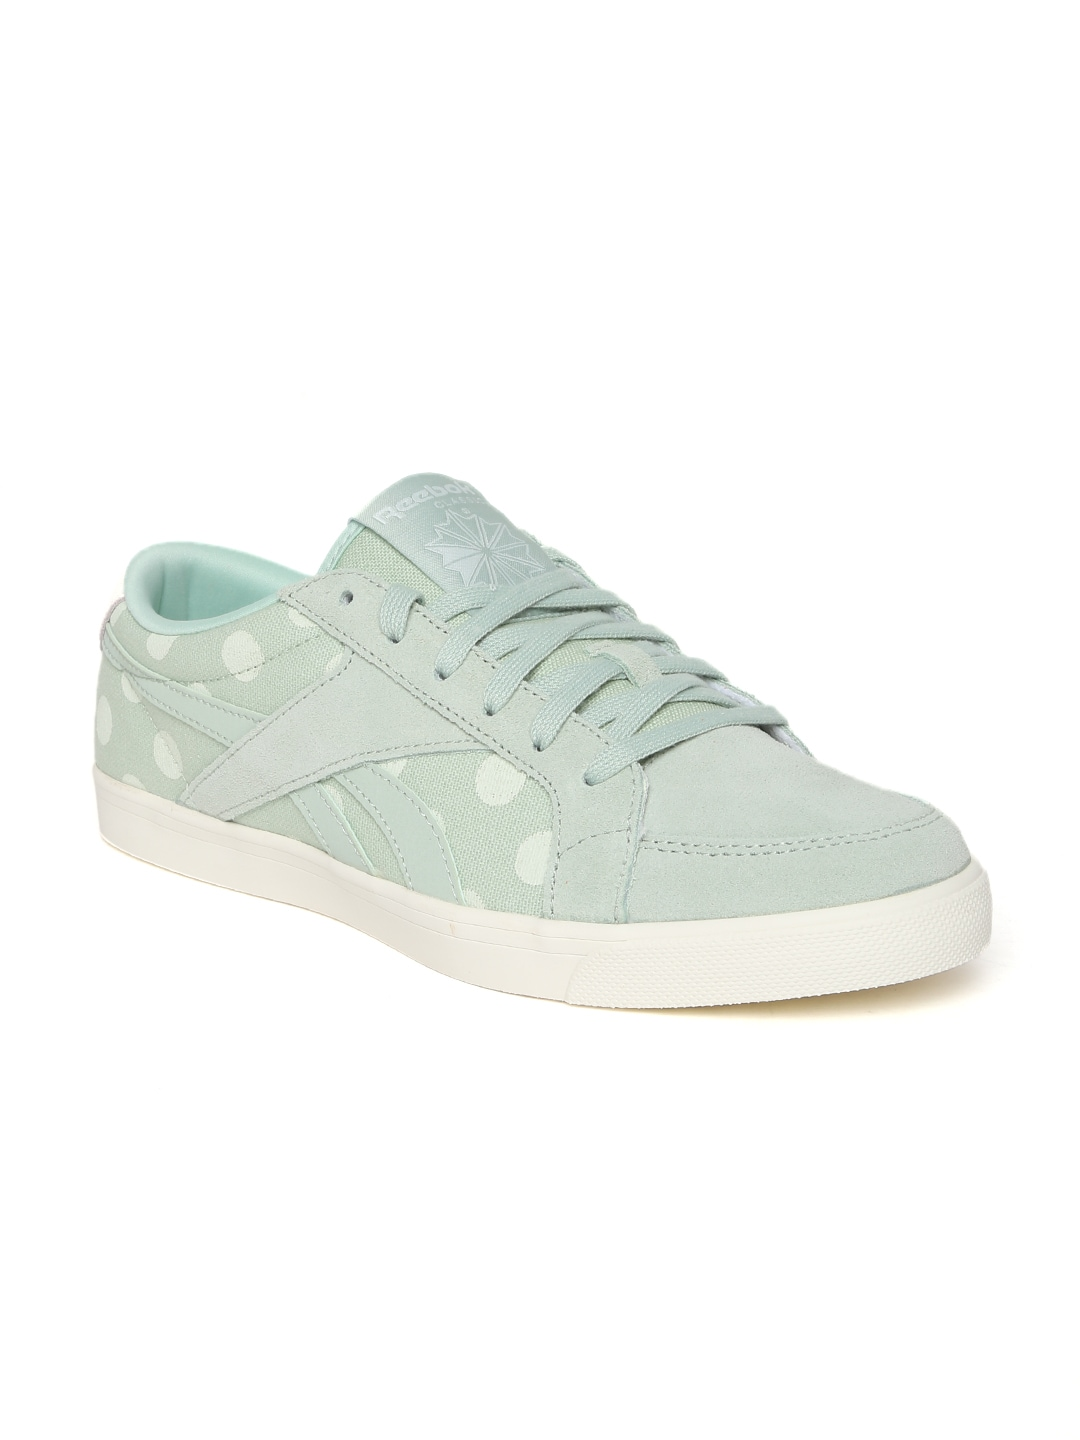 e8a246c1a7f Reebok v69331 Classic Women Mint Green Reefunk Ii Lo Core Printed Casual  Shoes- Price in India